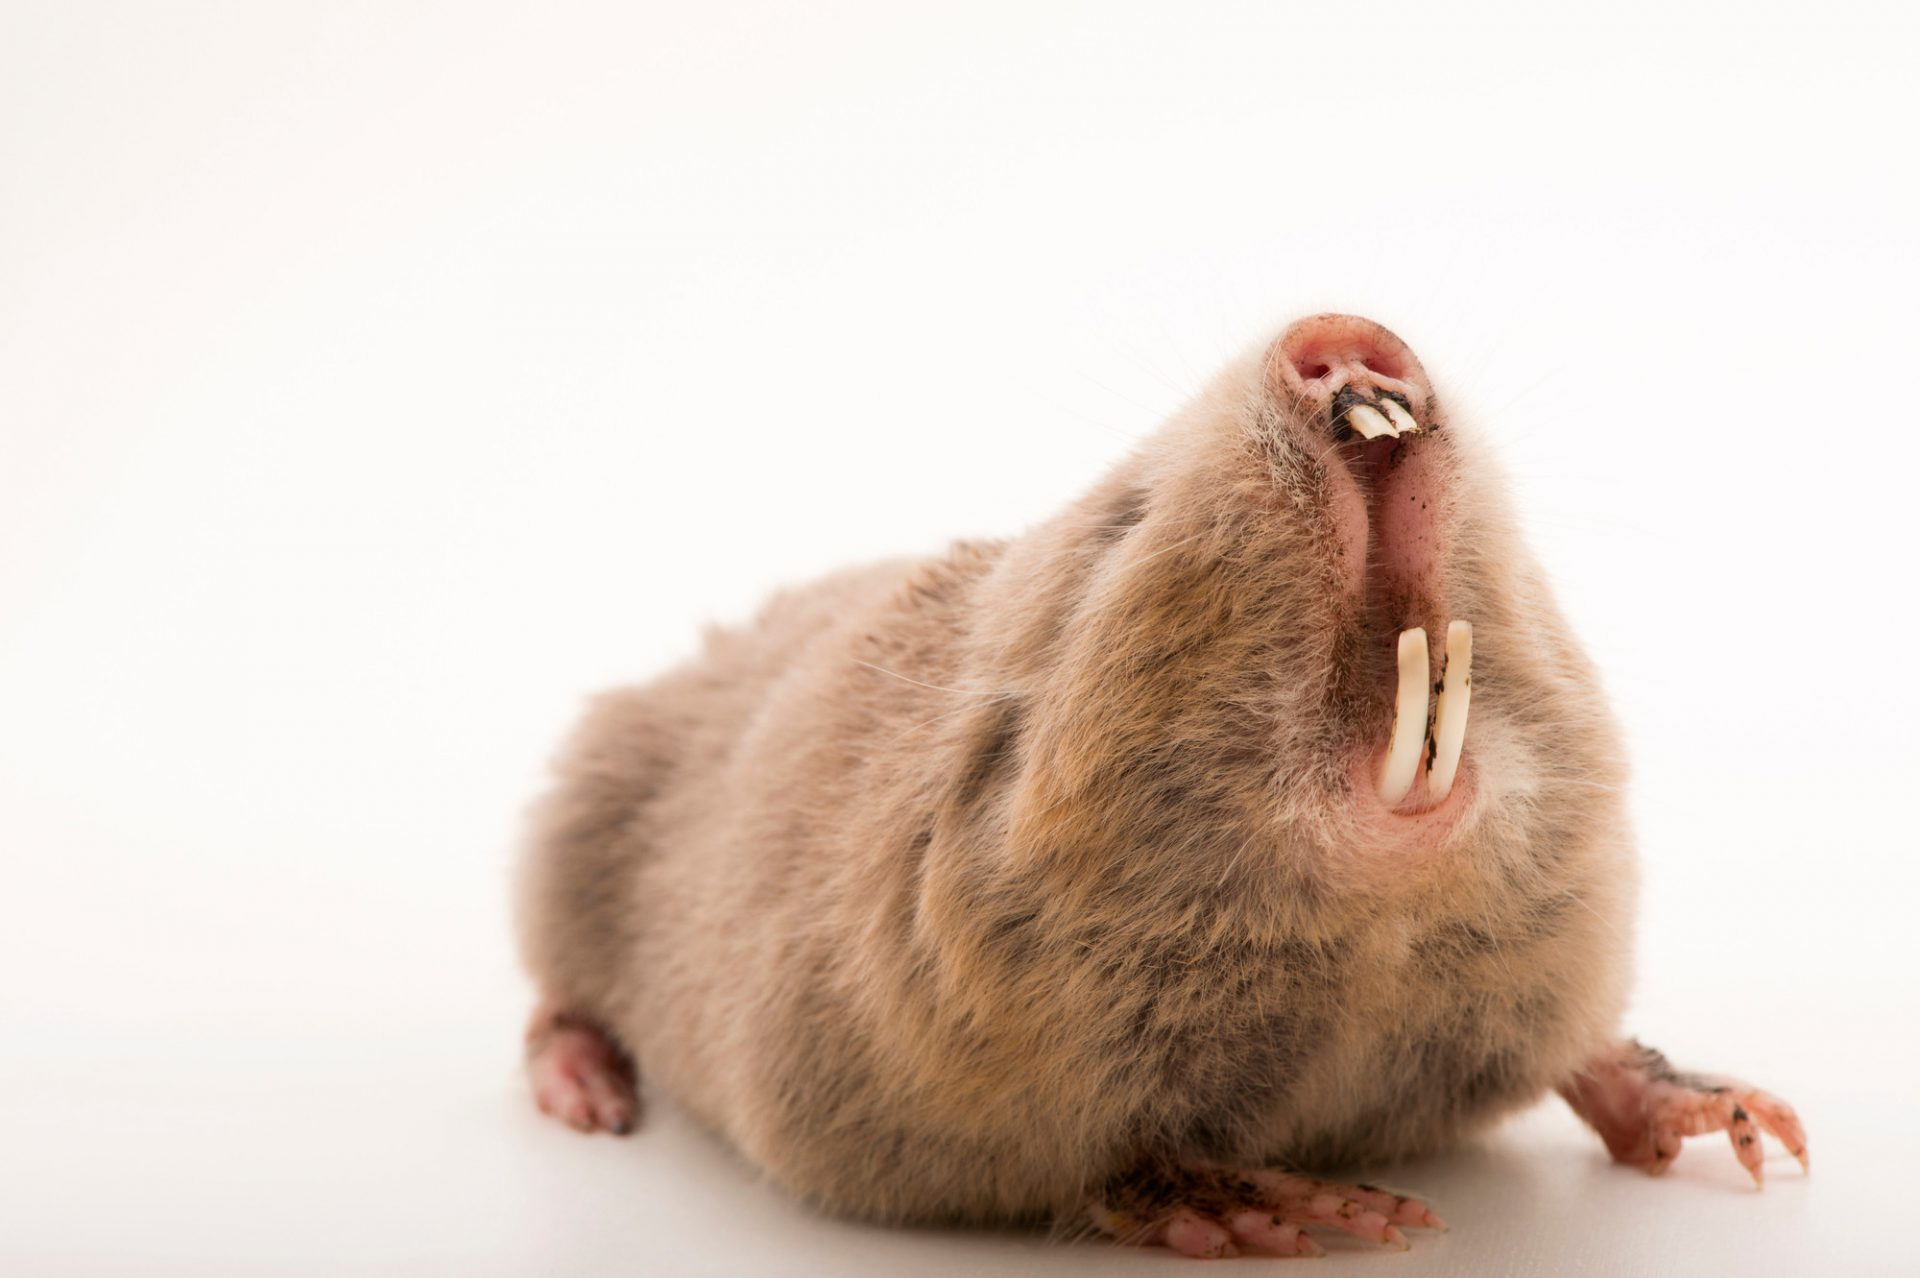 Picture of a silvery mole rat (Heliophobius argenteocinereus) at the Plzen Zoo in the Czech Republic.